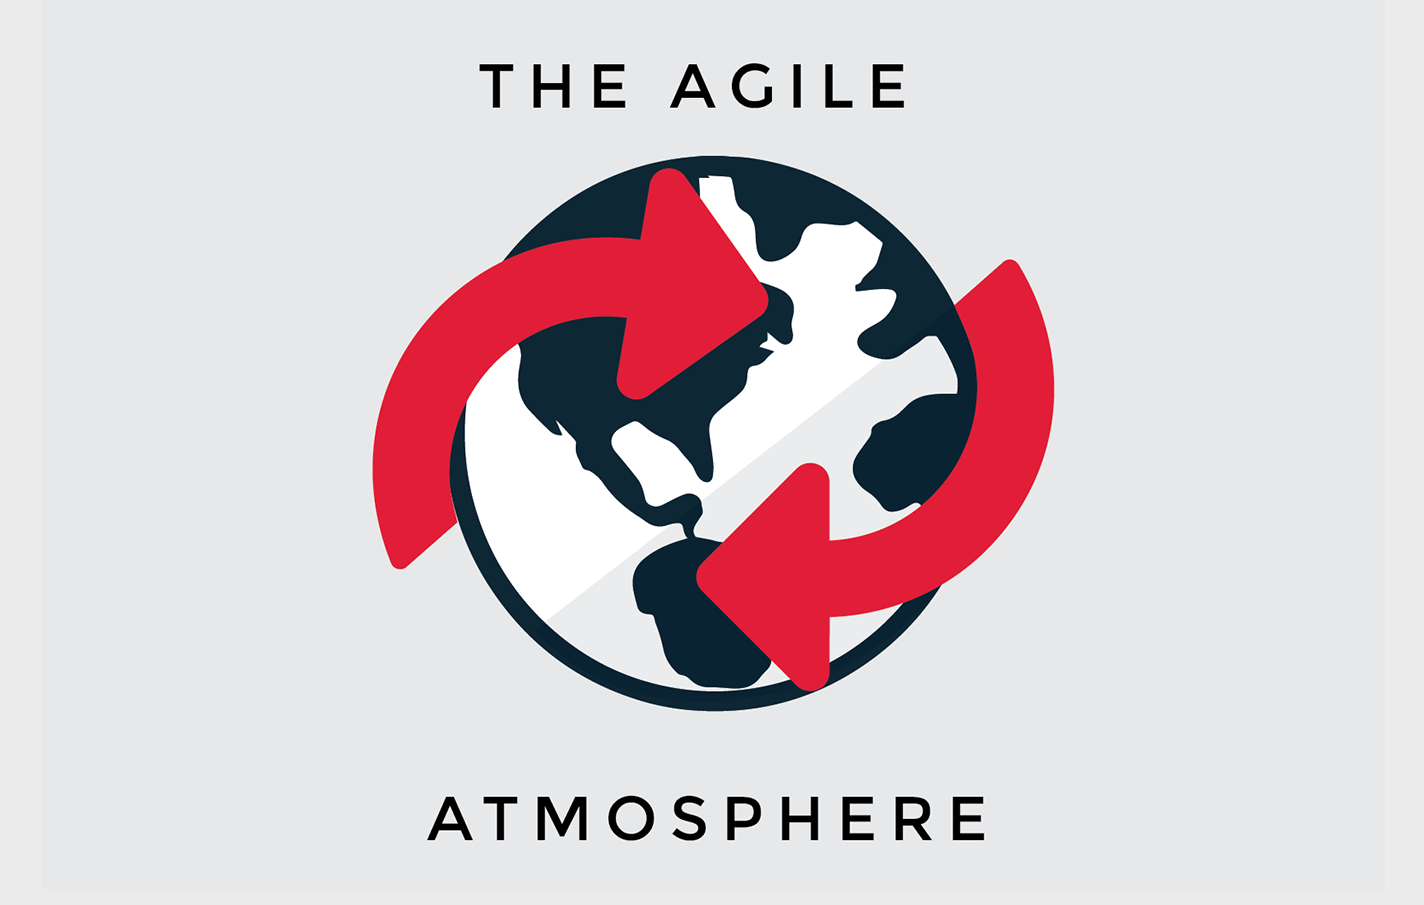 the agile atmosphere